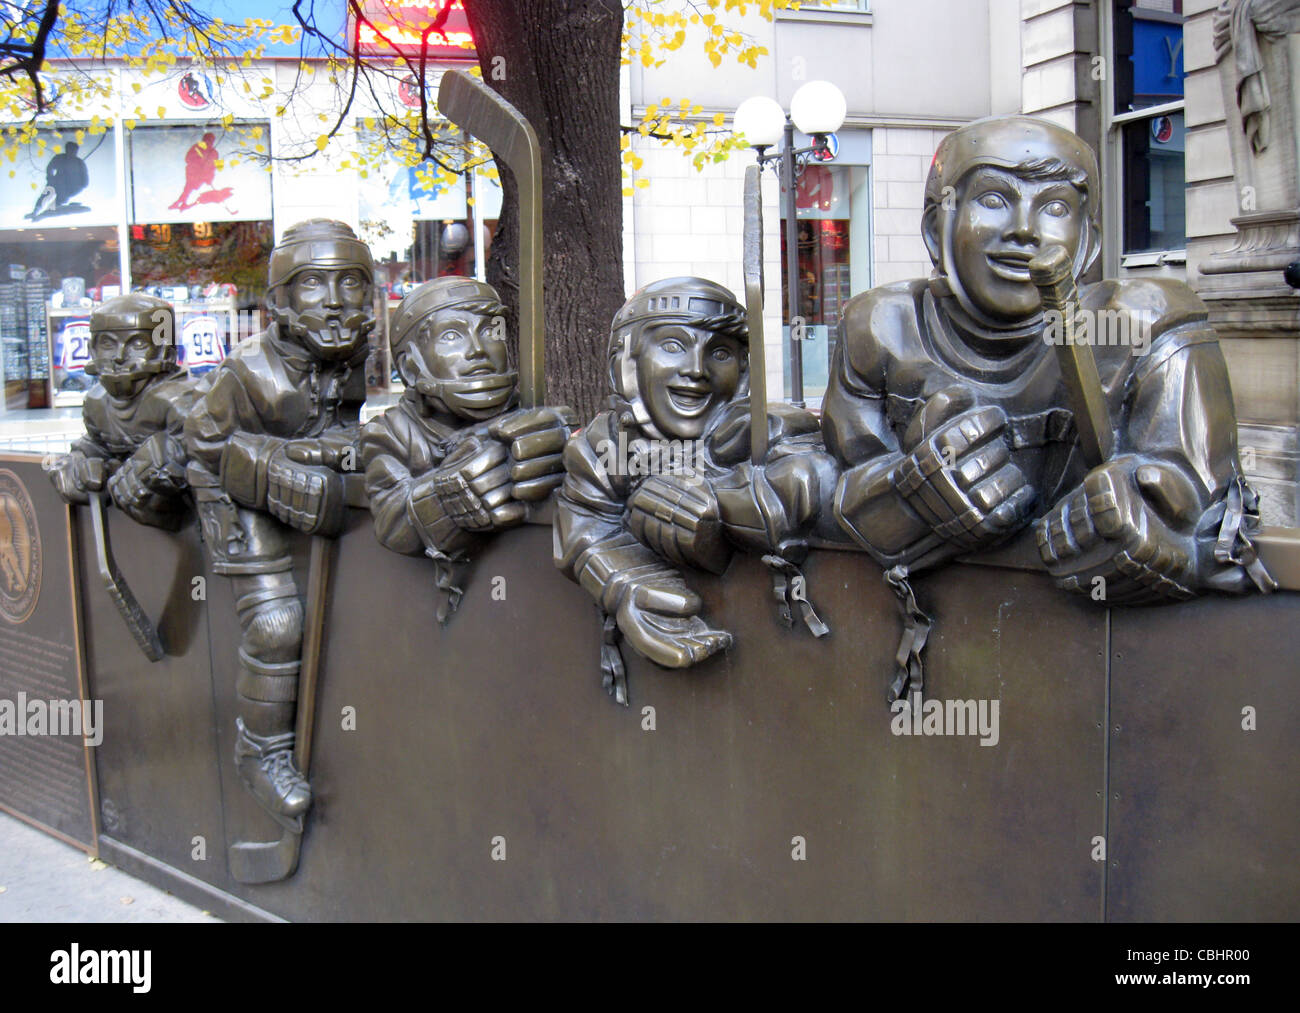 HOCKEY HALL OF FAME, Toronto. Sculpture of players outside the museum. Photo Tony Gale - Stock Image